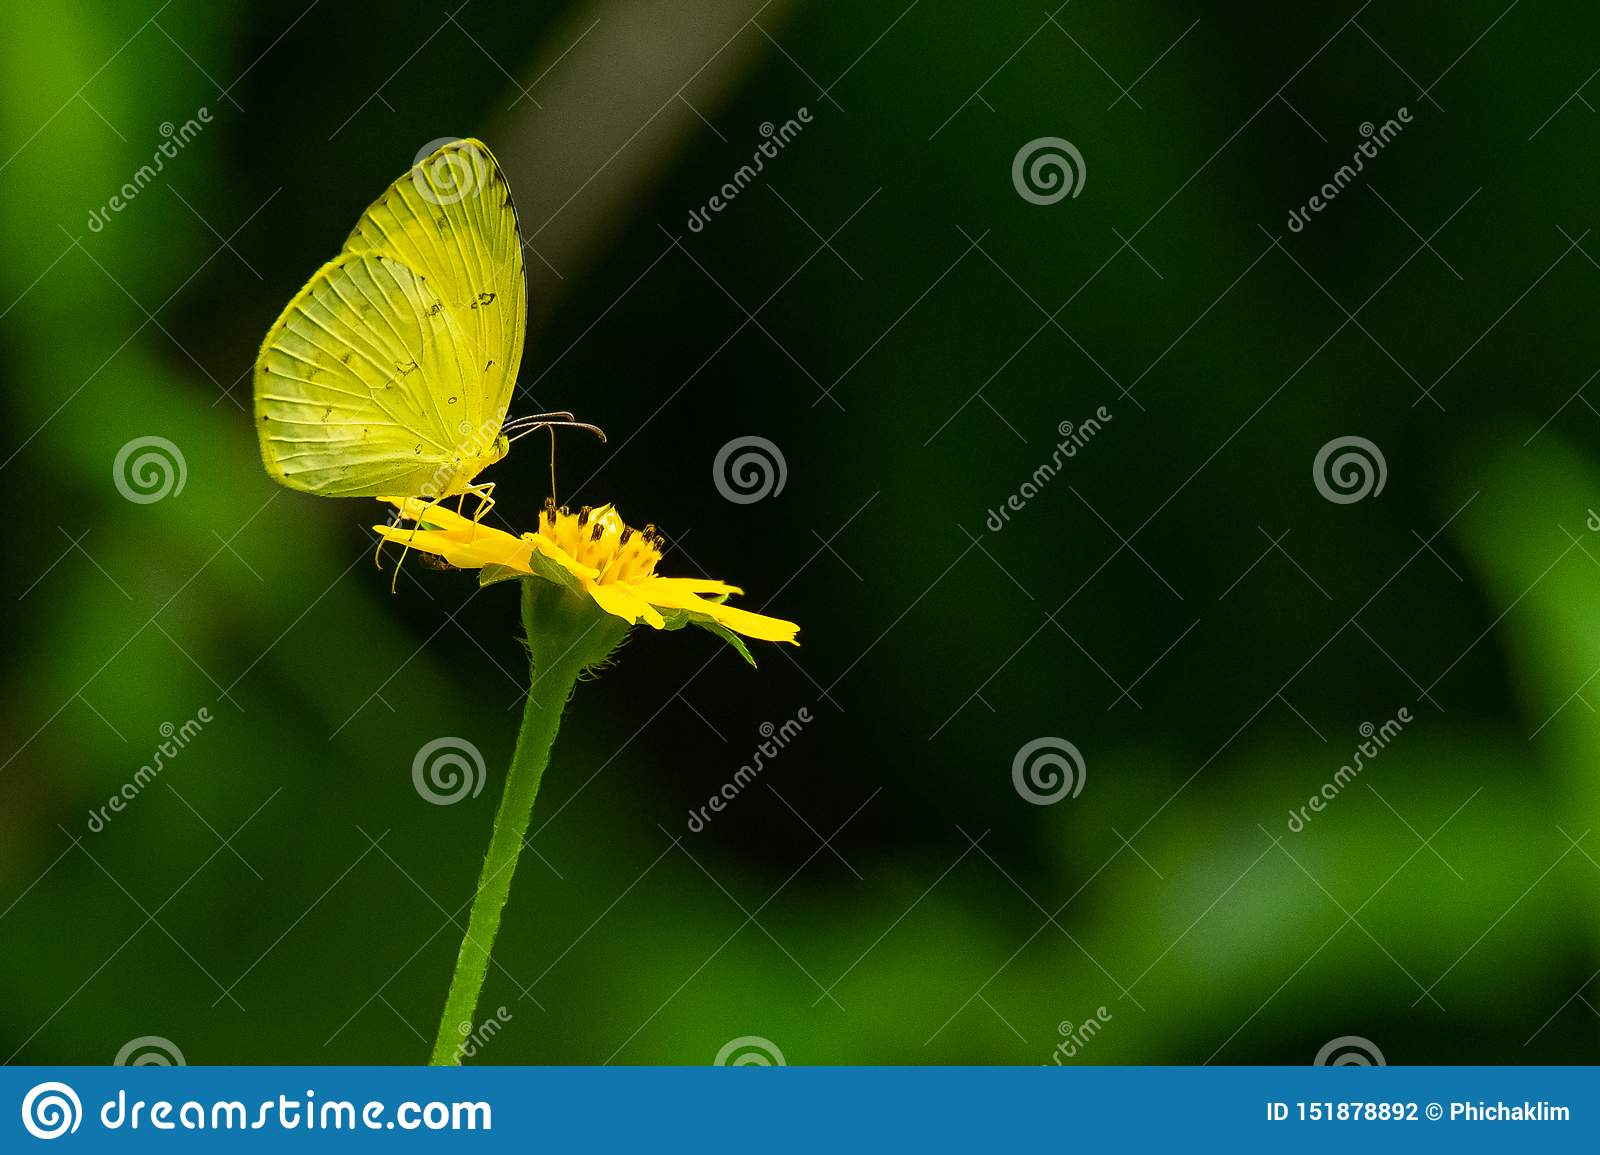 Common Grass Yellow butterfly useing its probostic to collect the nectar from the flower